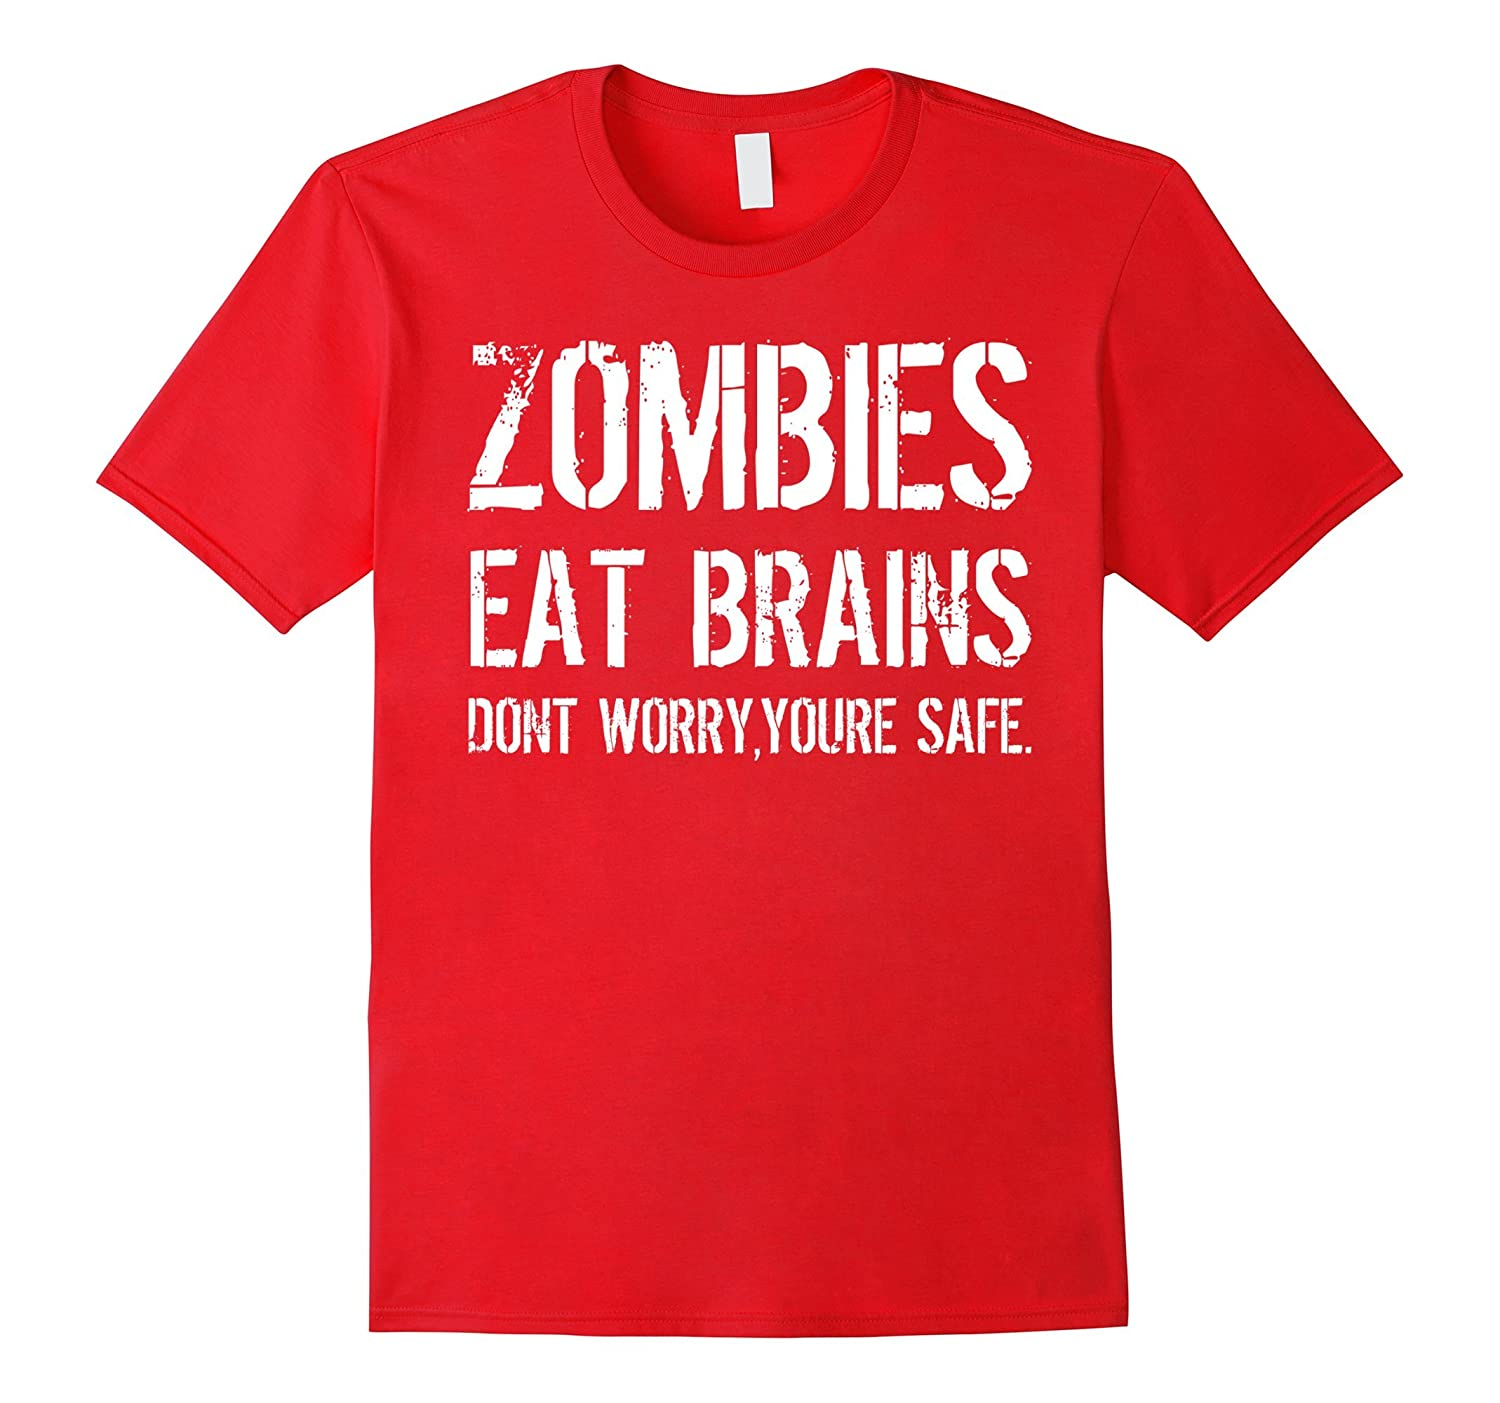 Zombies Eat Brains So You're Safe Funny T-Shirt-BN